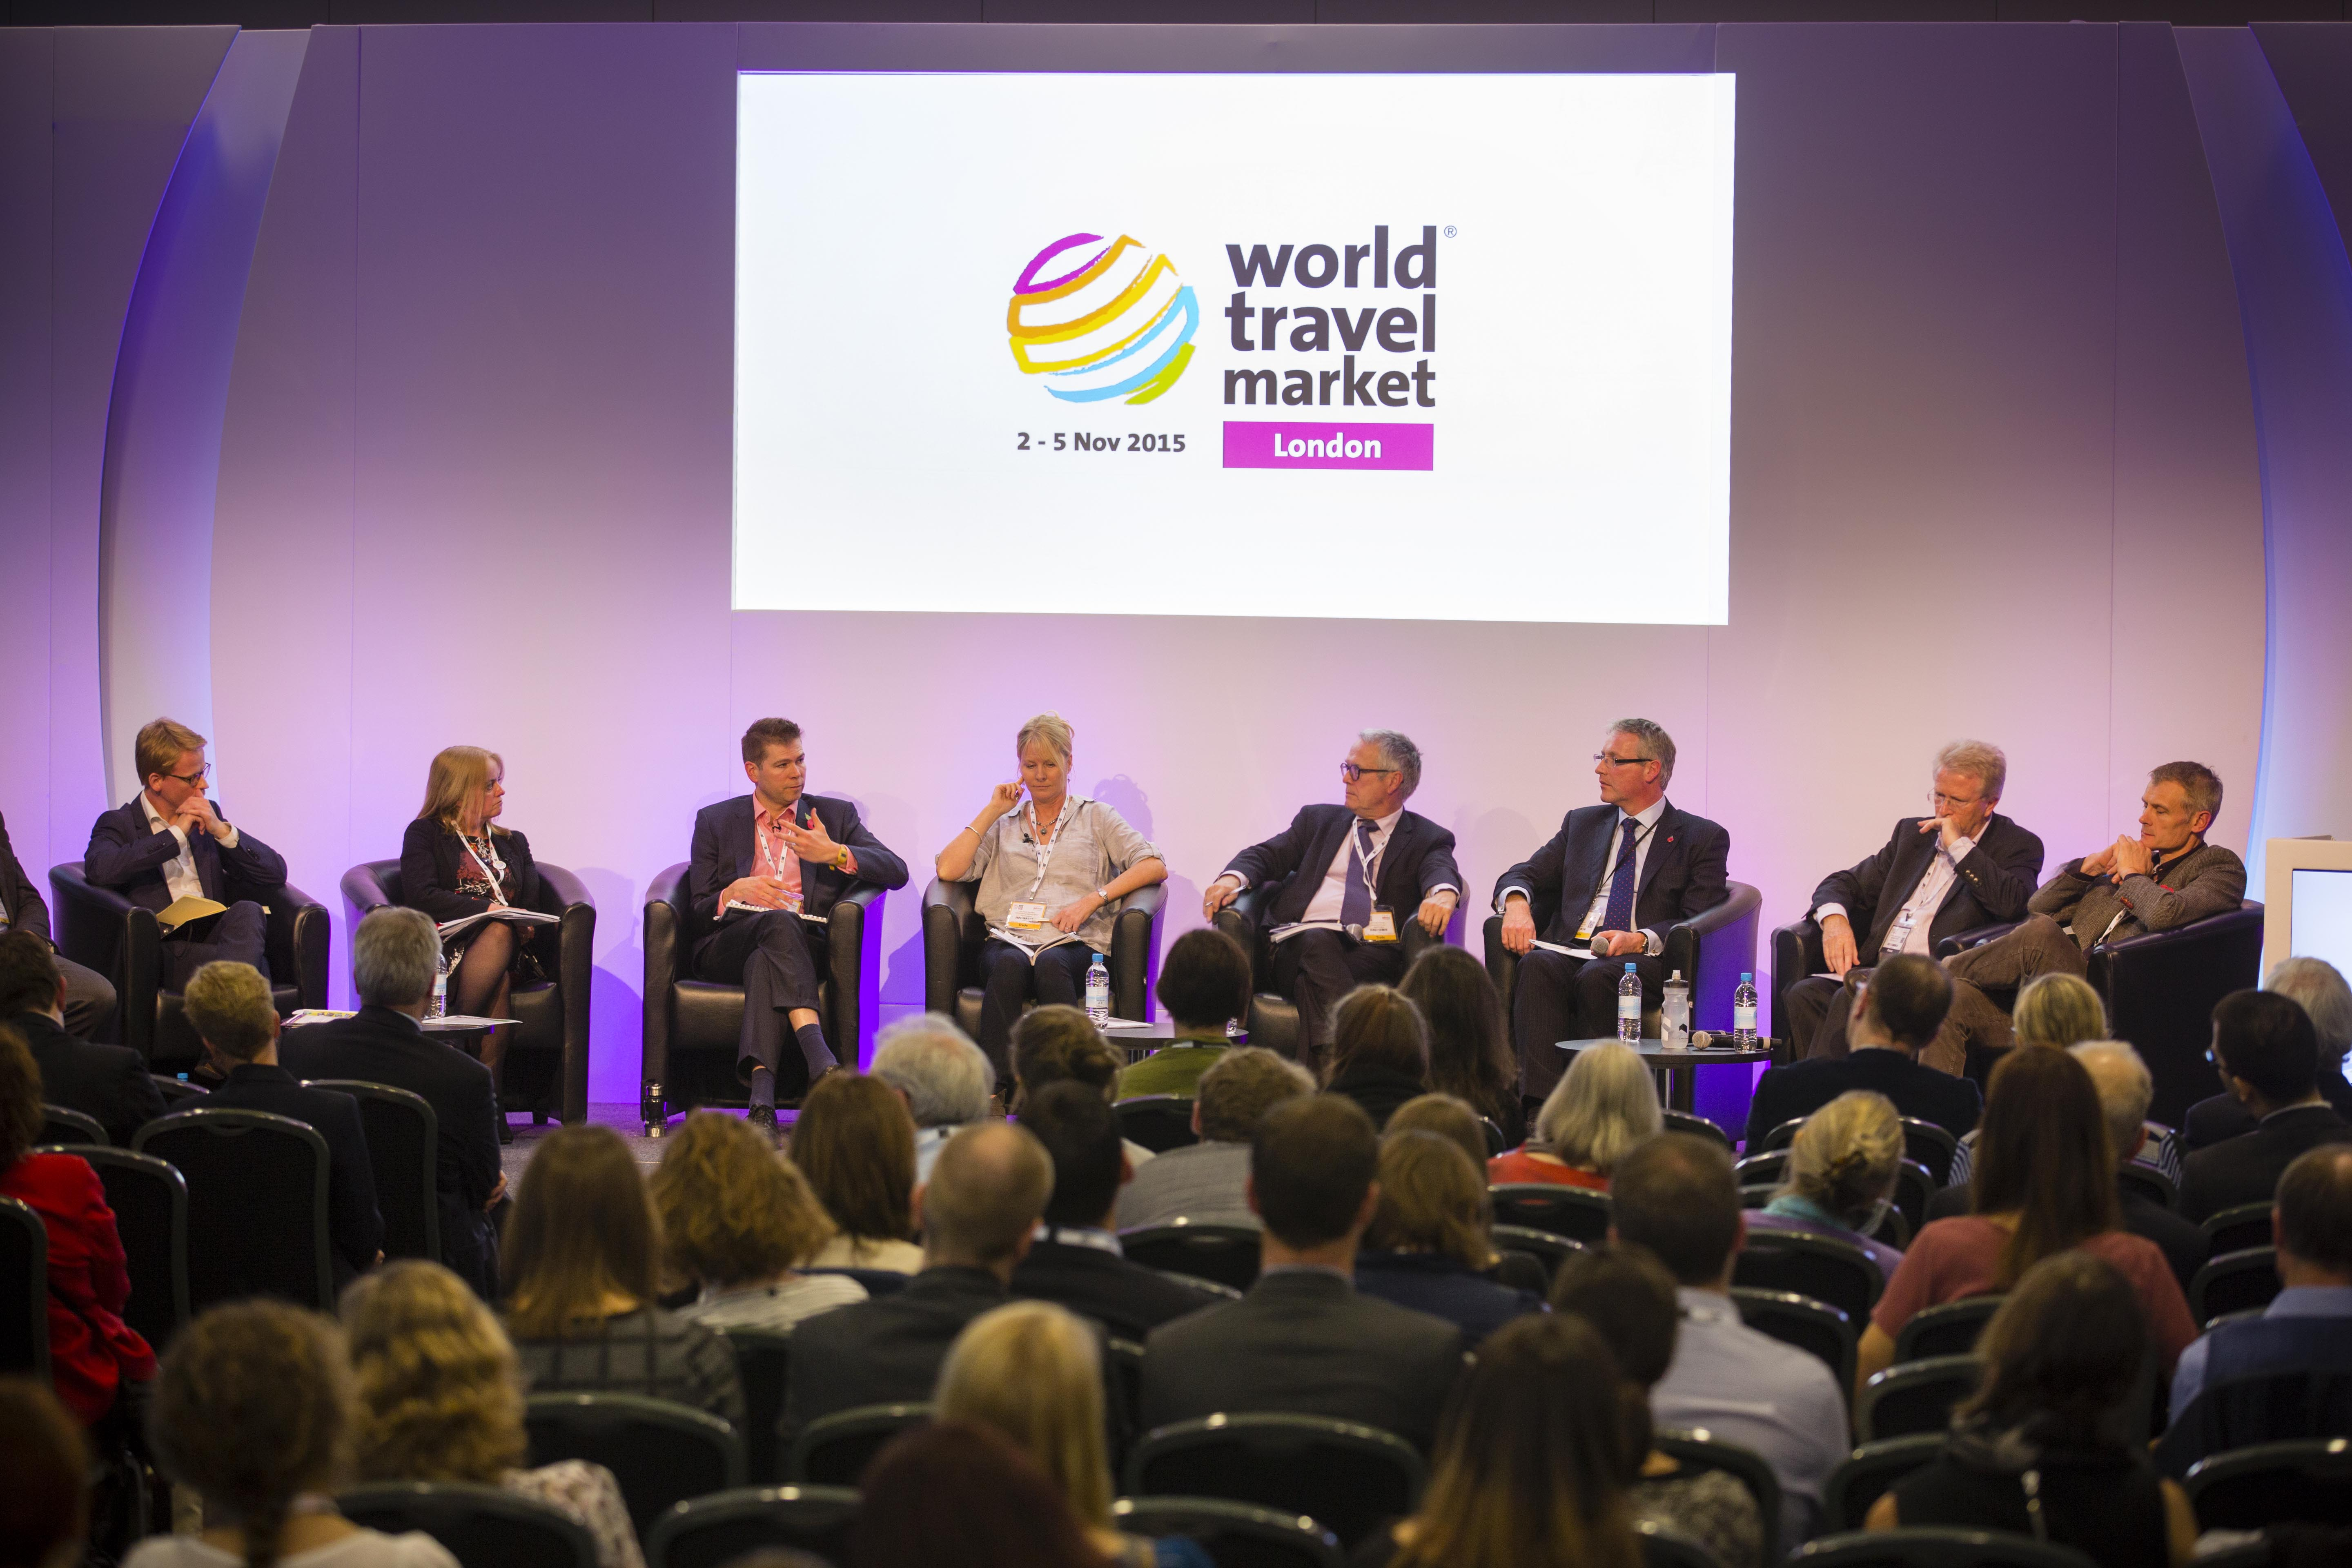 WTM London 2015 Conference and Events Sees a Record 18,000 Attendees